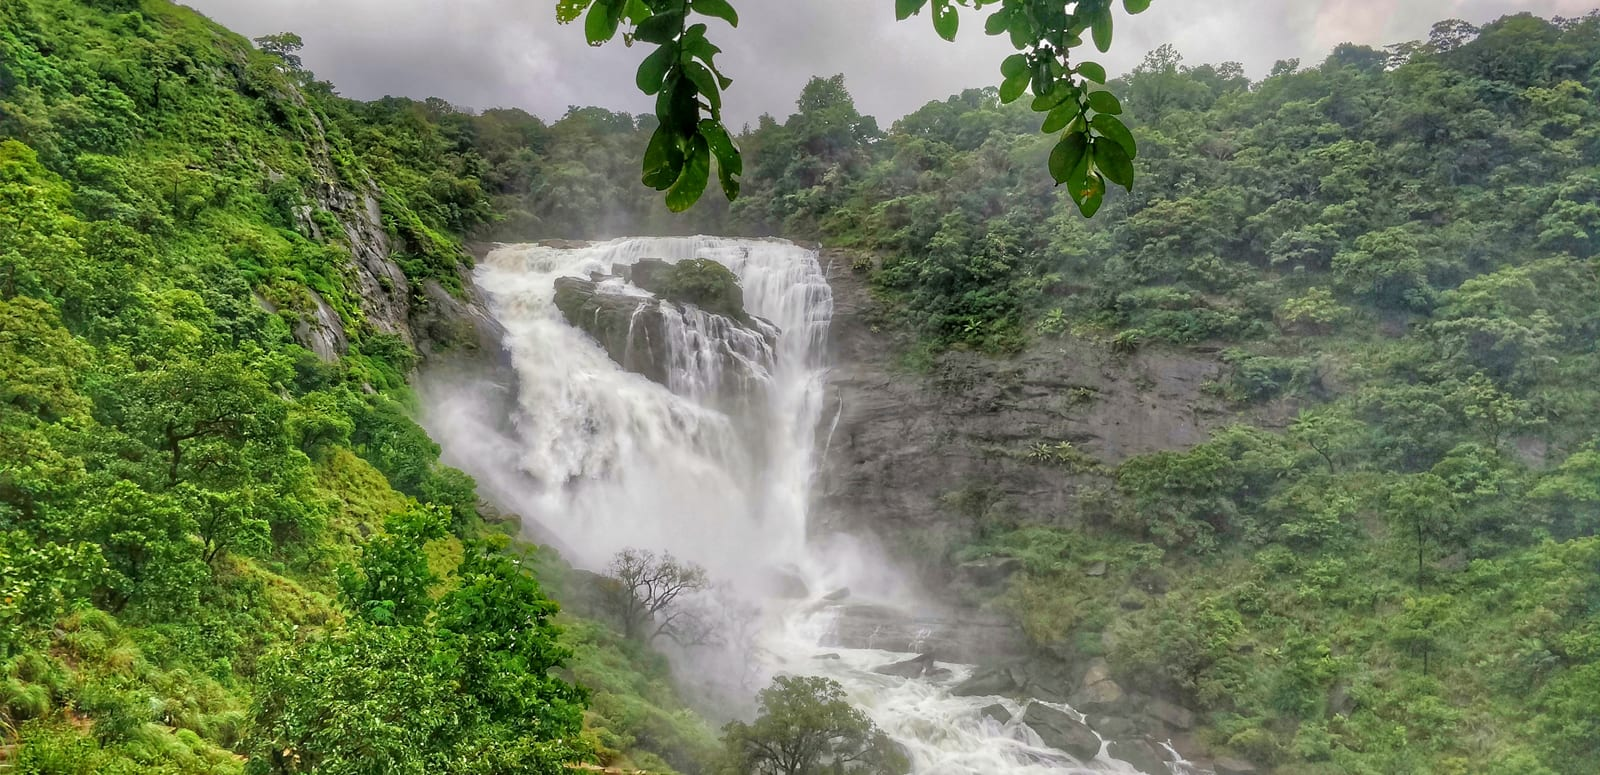 8 Best Waterfalls in Coorg - 2019 (With Photos and Reviews)